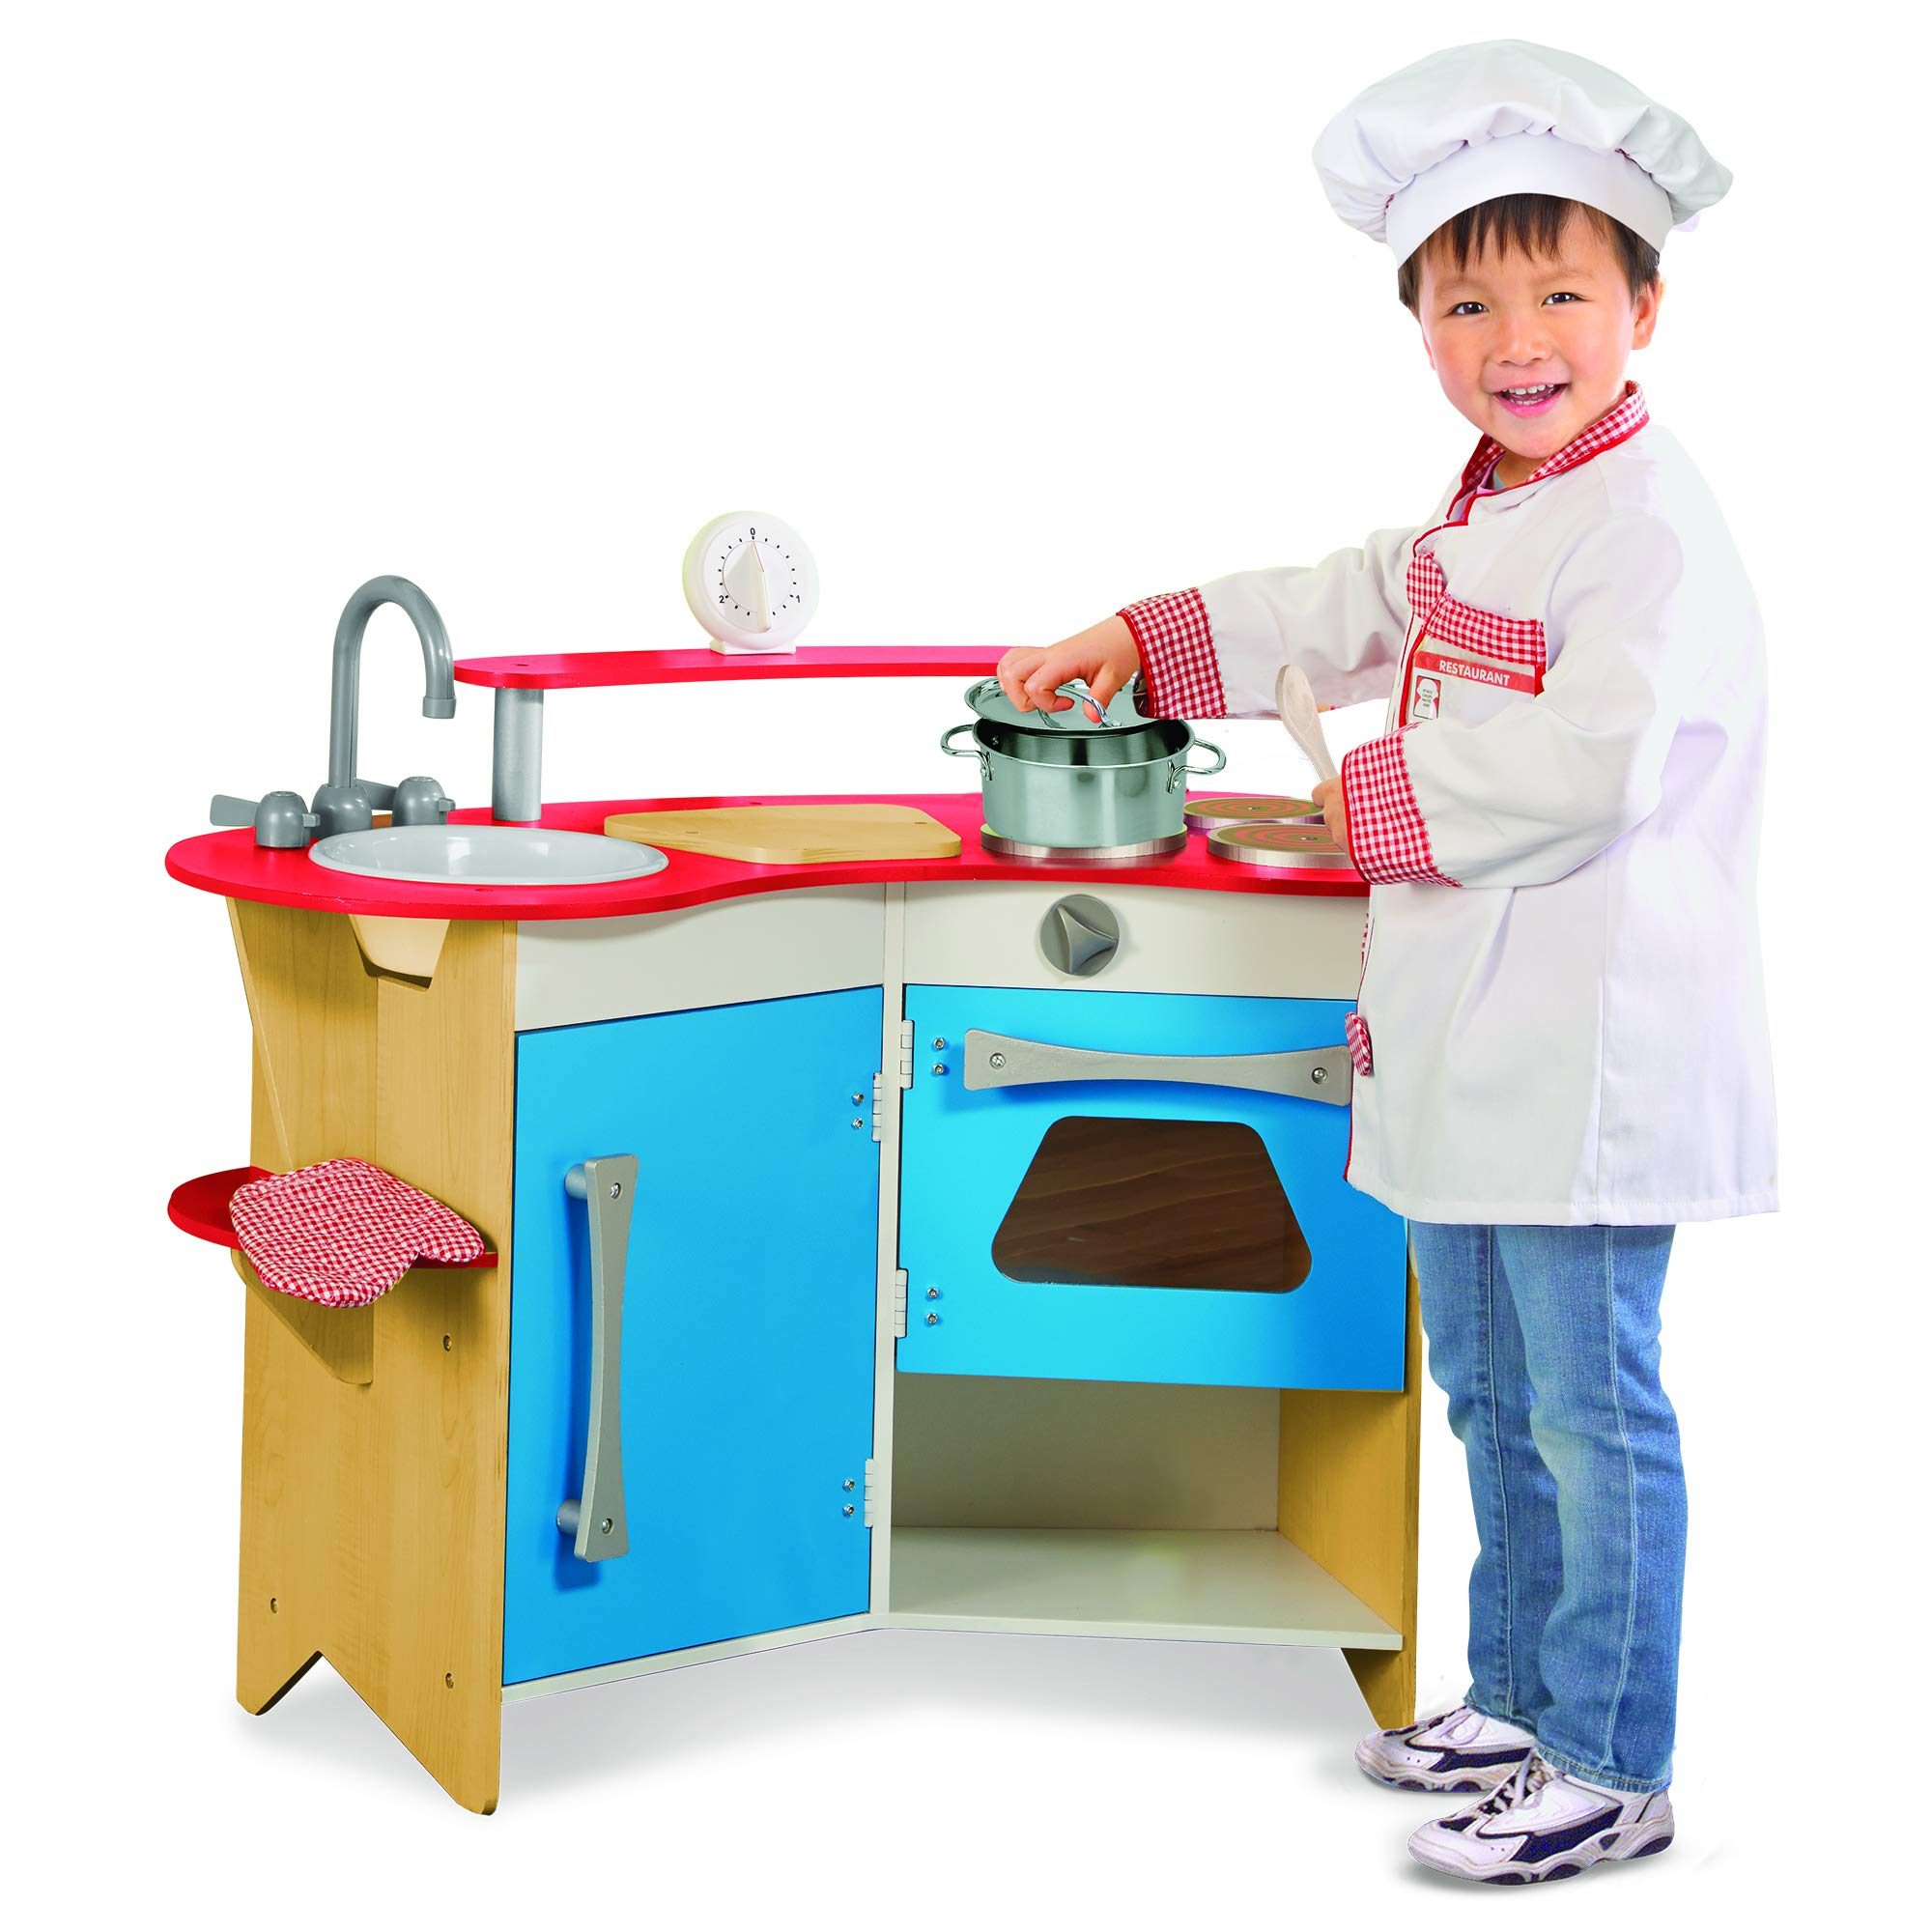 Melissa & Doug Cook's Corner Wooden Pretend Play Toy Kitchen by Melissa & Doug (Image #2)